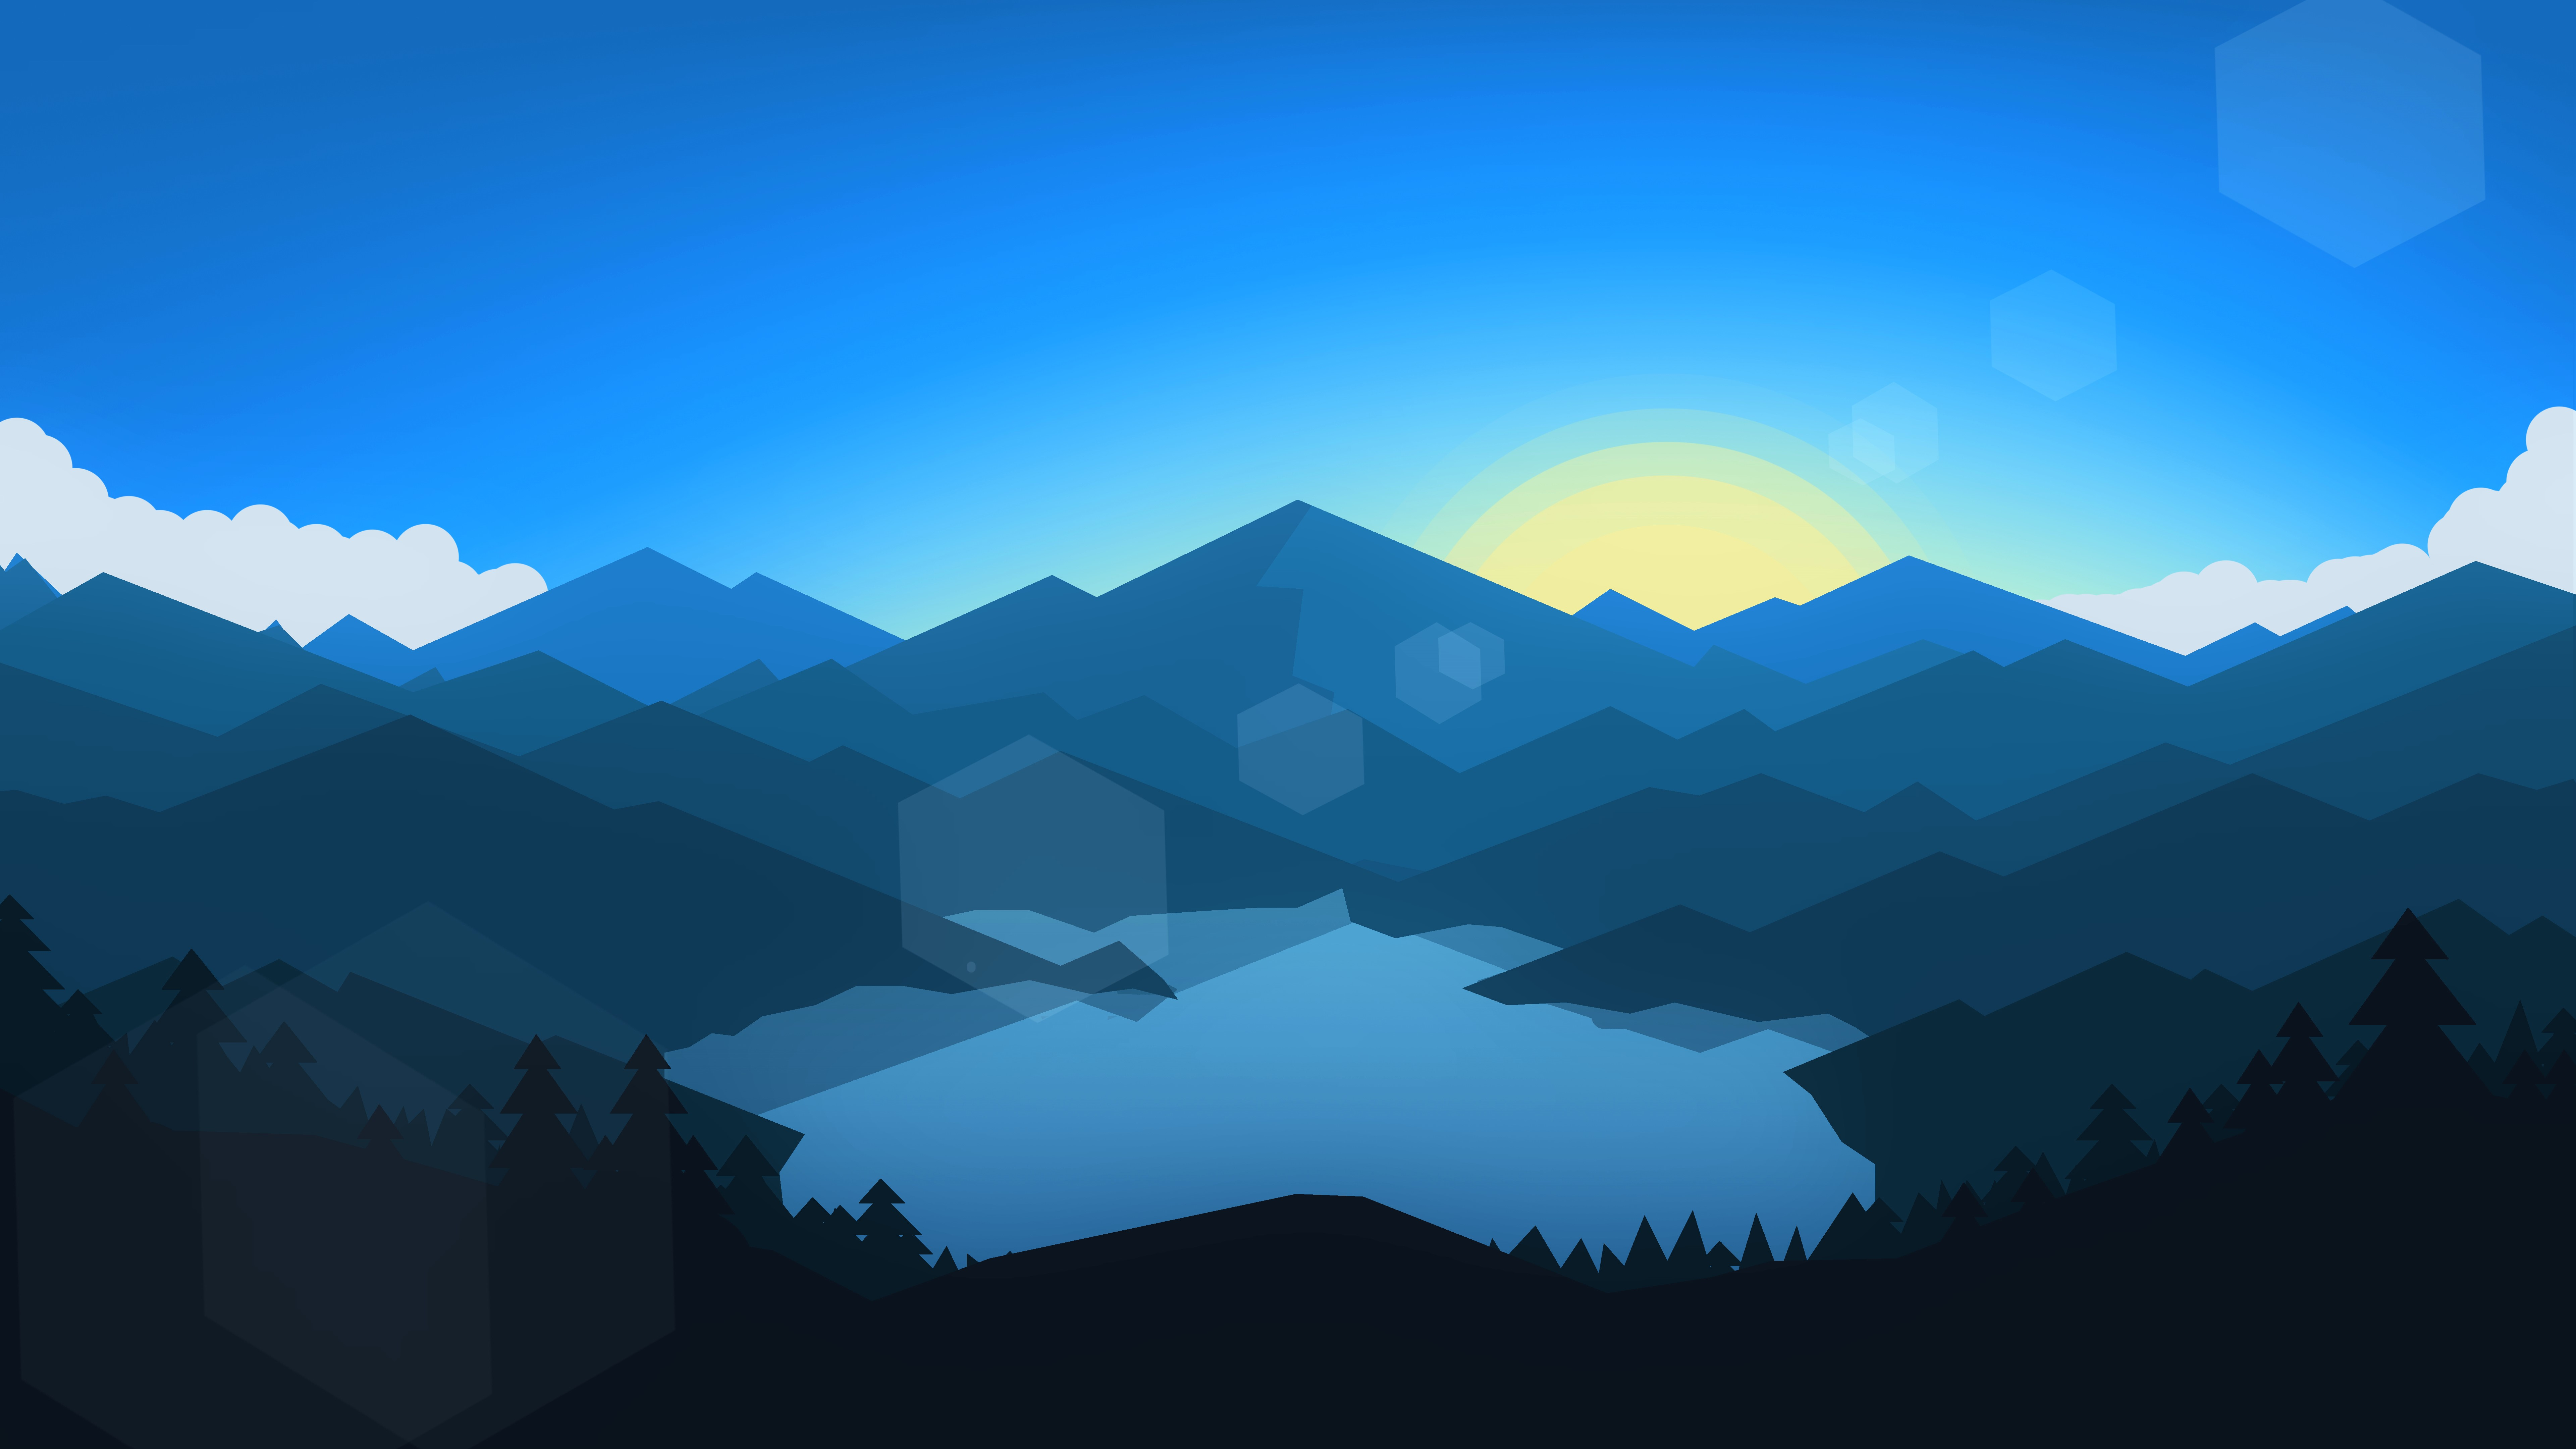 Simple Wallpaper Mountain Minimalistic - forest-mountains-sunset-cool-weather-minimalism-yn  Pic_206699.jpg